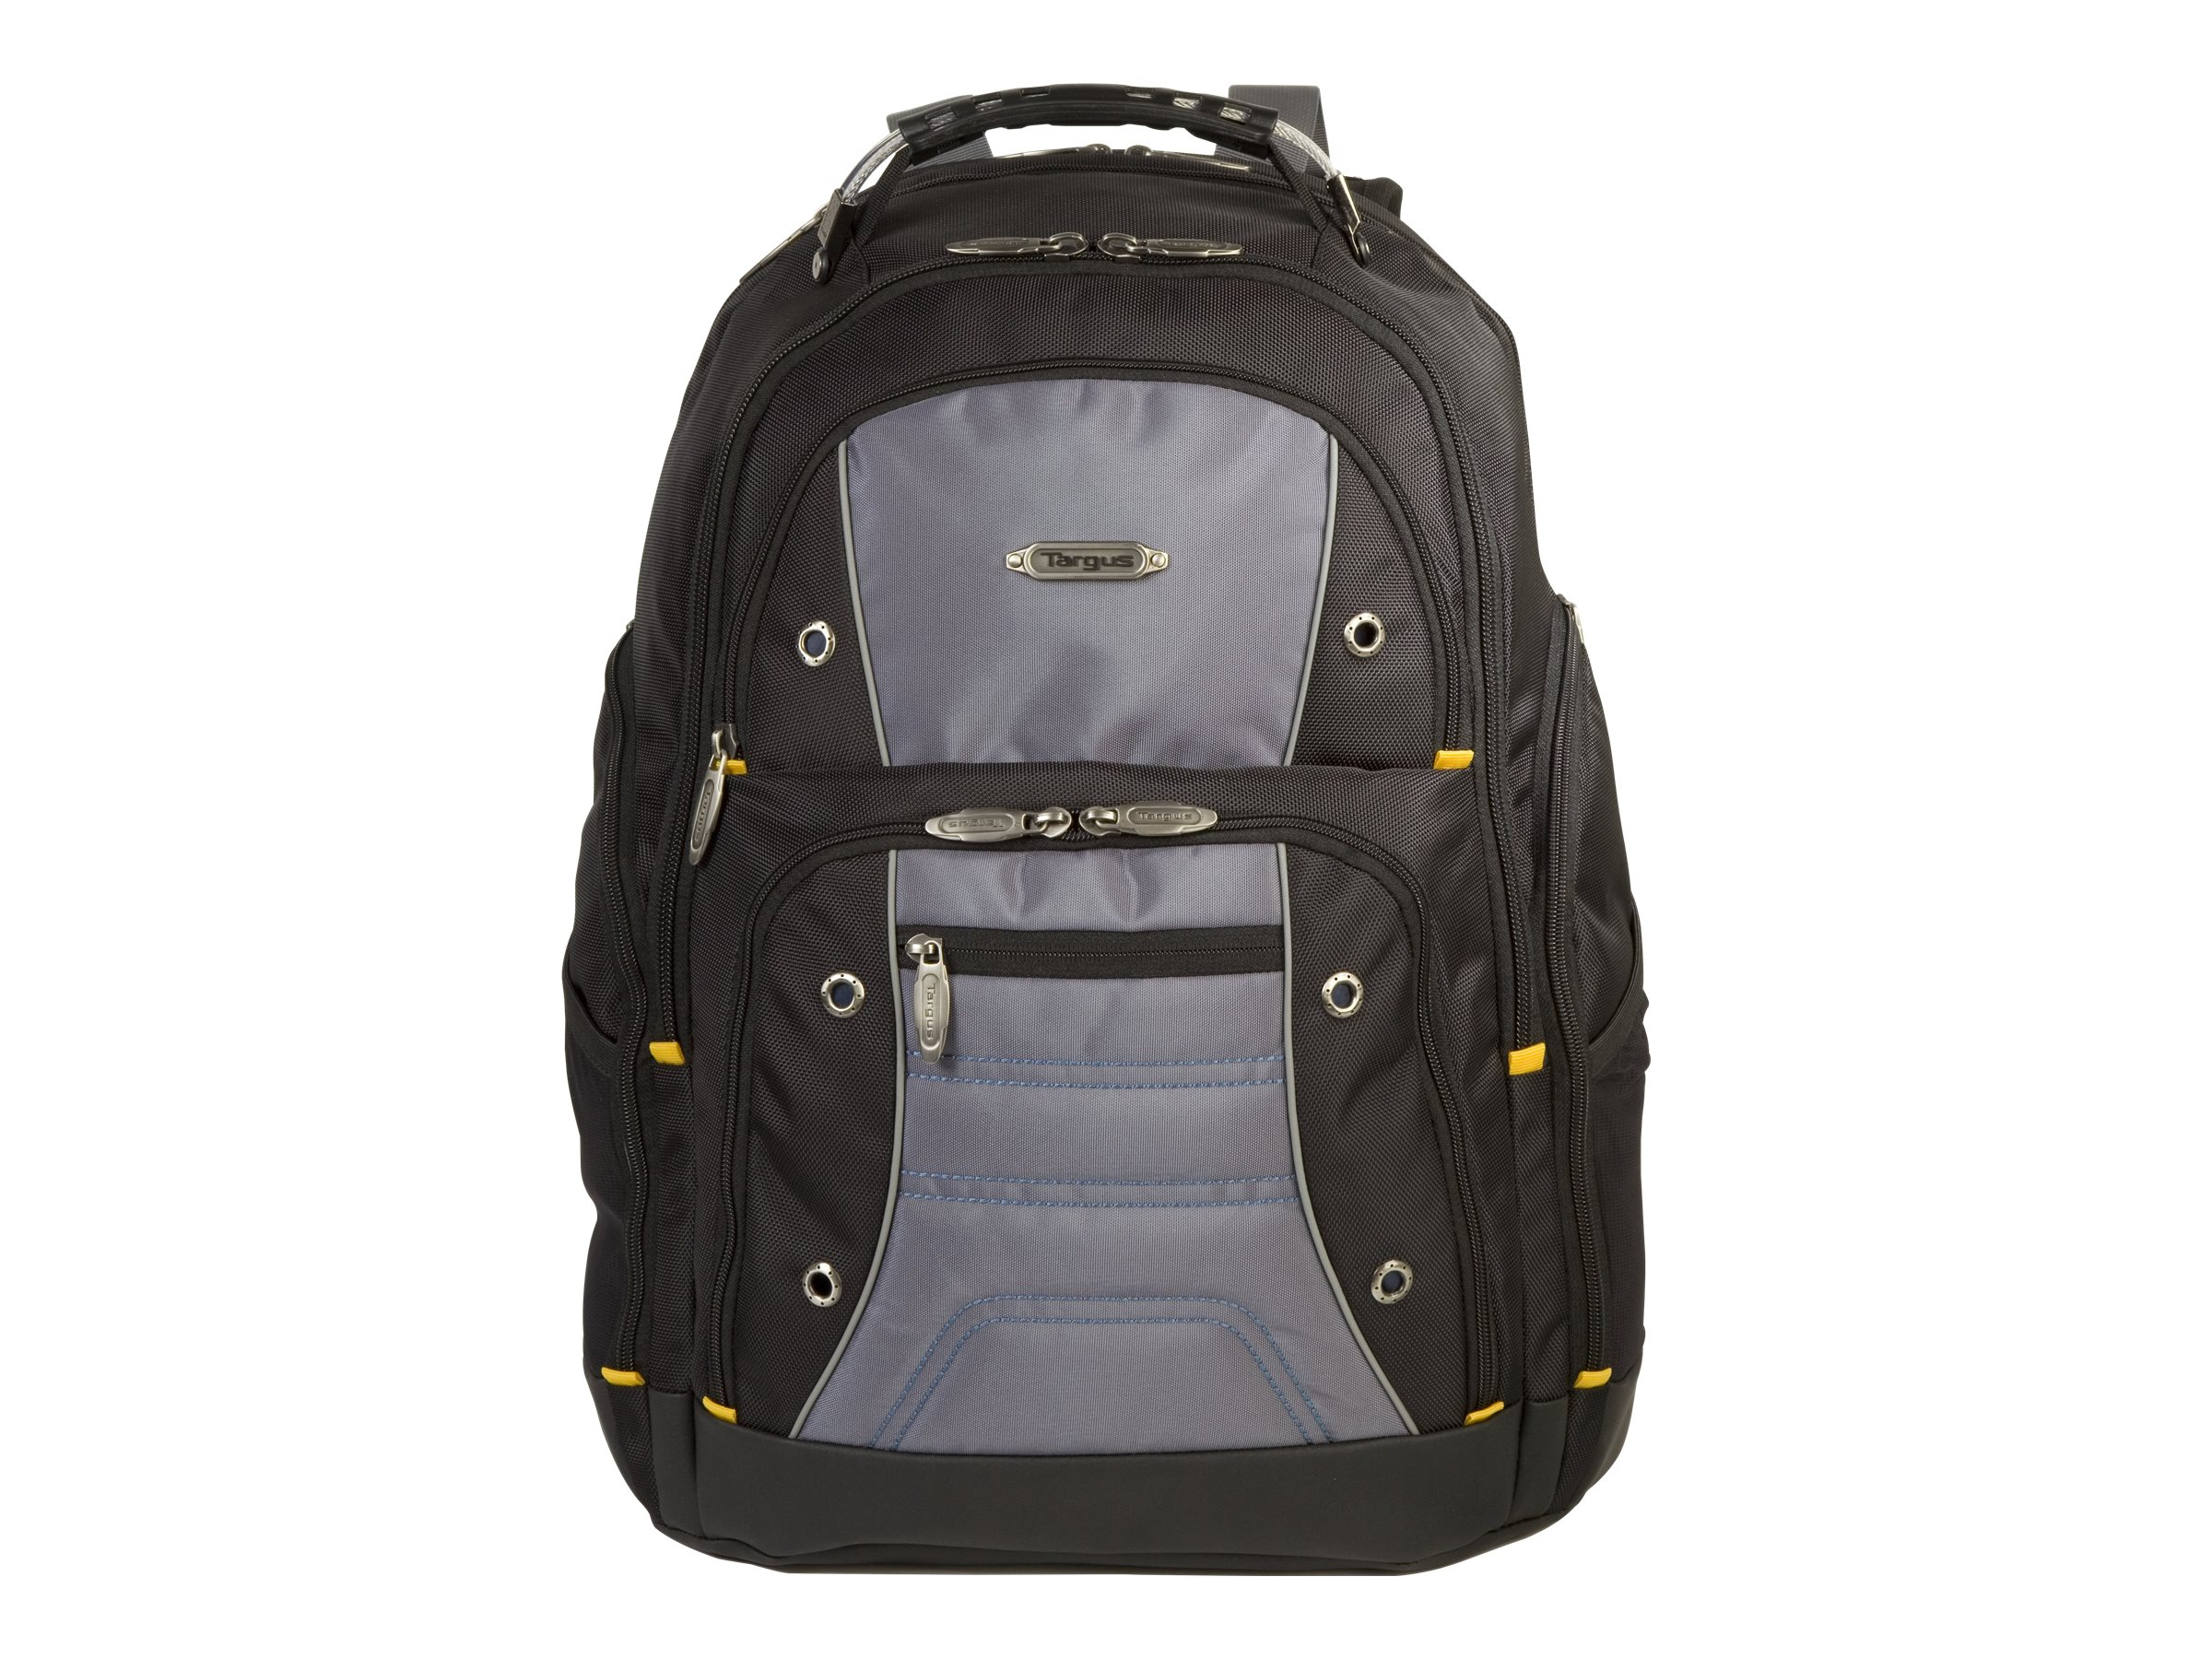 Targus Drifter II Backpack, Black with Colored Trim, TSB239US, 12838572, Carrying Cases - Notebook